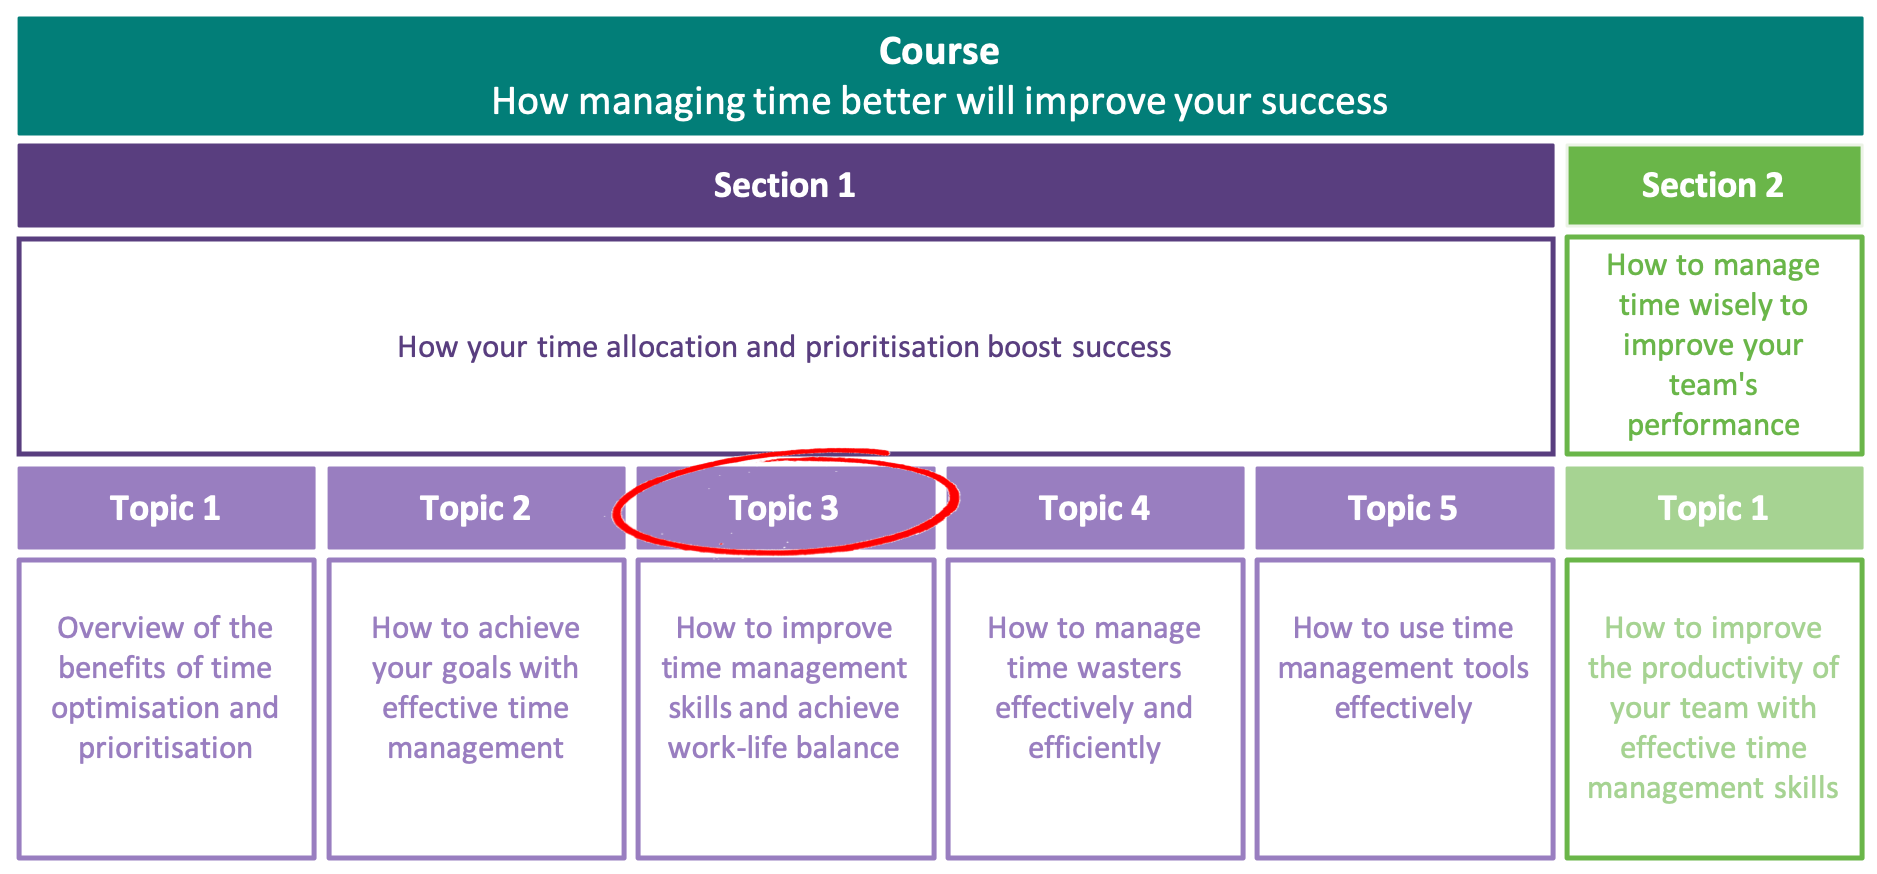 How to improve time management skills and achieve work-life balance